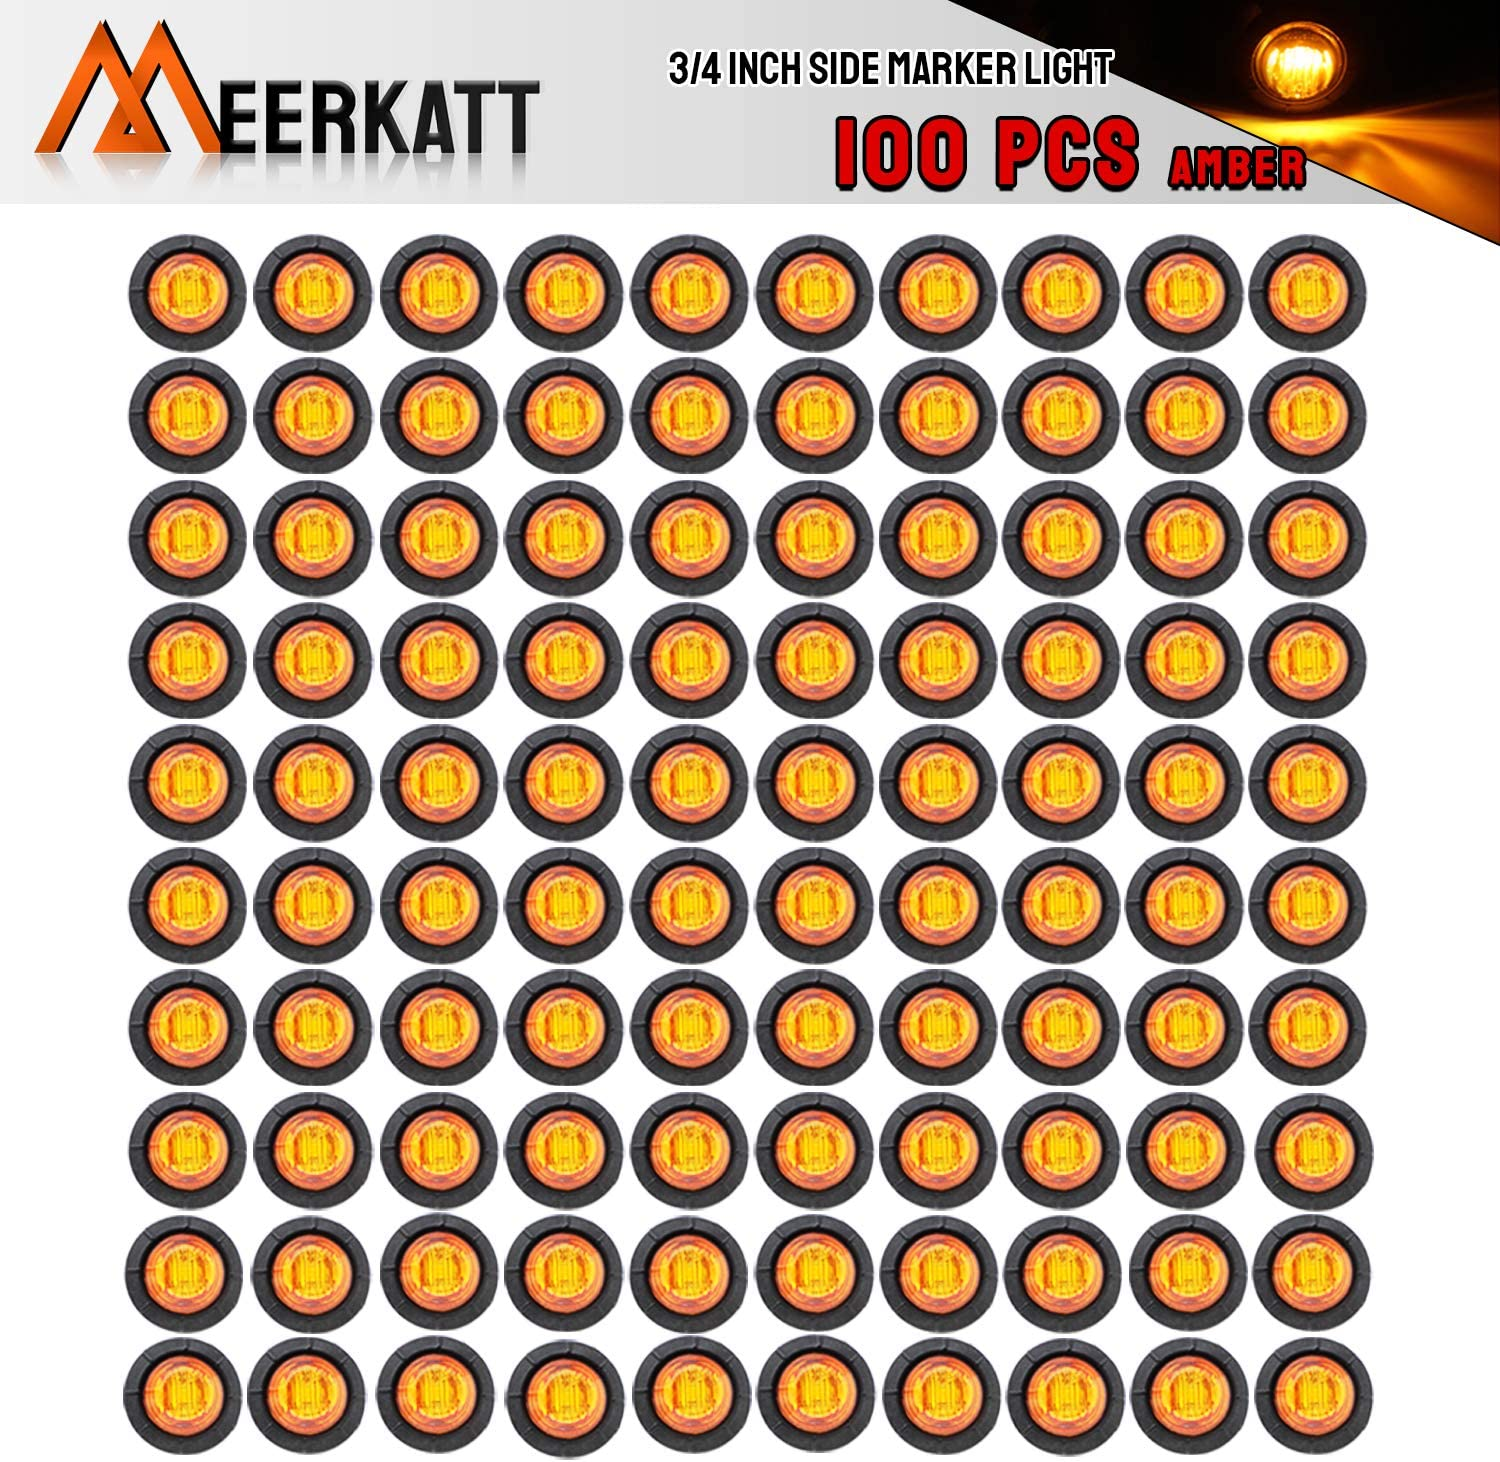 Meerkatt 3//4 Inch Mini Small Round Clear Lens Amber LED Button Clearance Lamp Universal Side Marker Indicator Light Waterproof Marine Truck Bus Trailer Jeep RV Lorry Van 12V DC grommets Pack of 50